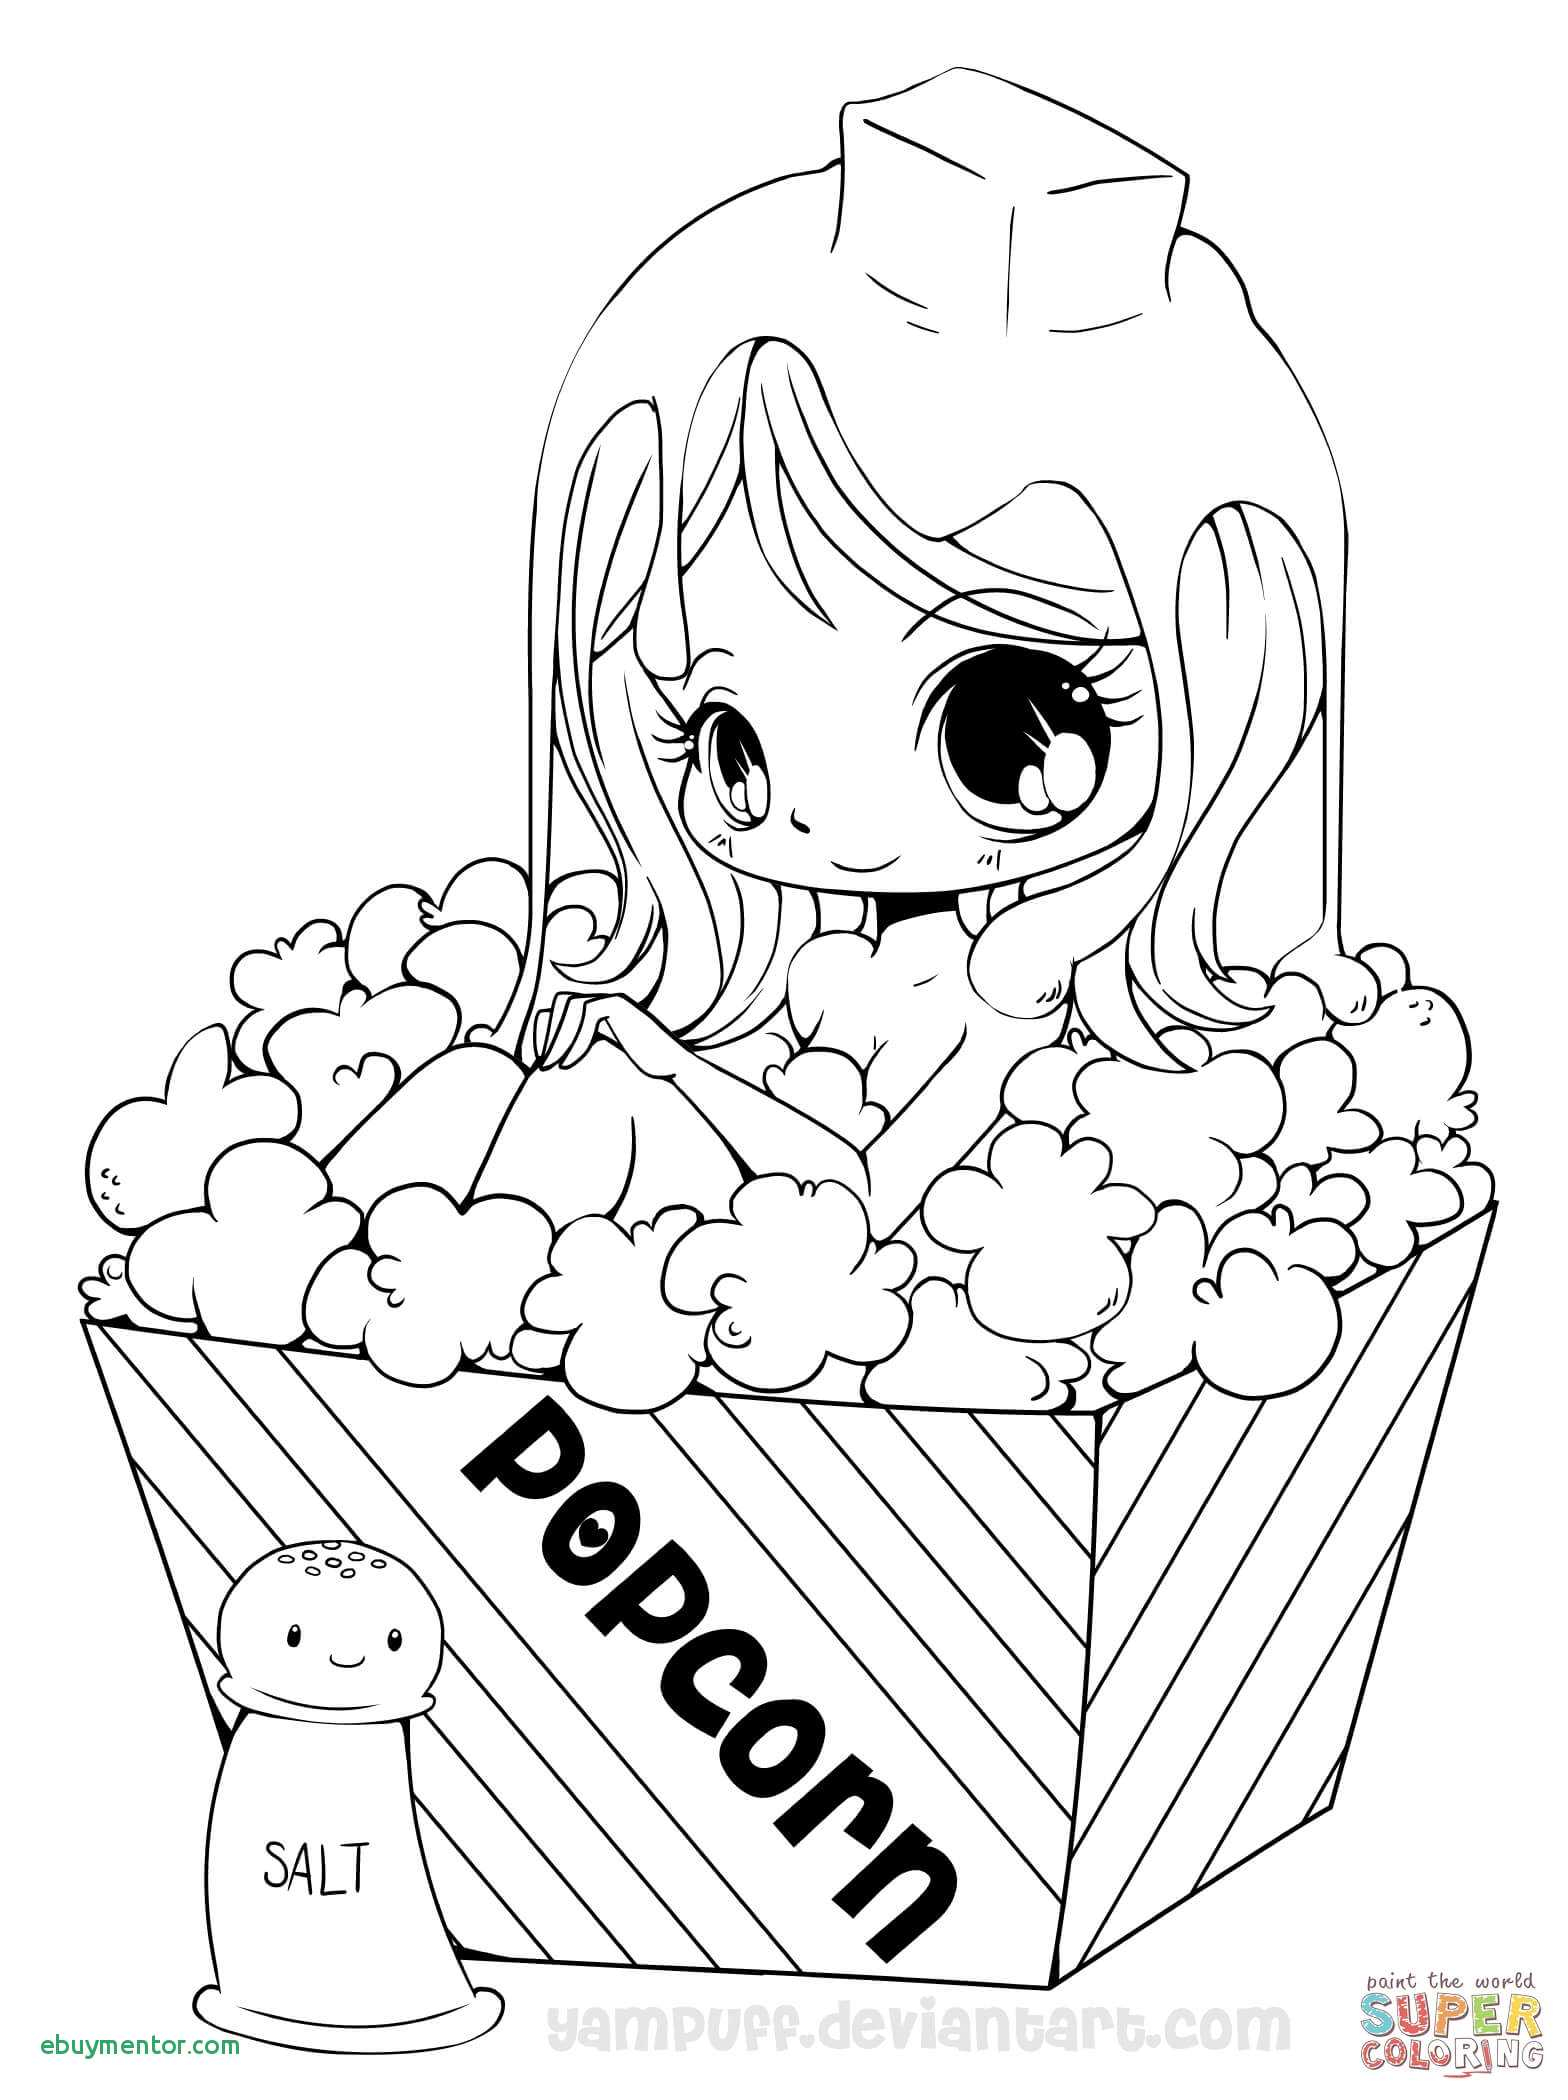 printable anime coloring pages Download-Anime Girl Coloring Pages Witch Coloring Page Inspirational Crayola Pages 0d Coloring Page 4-t